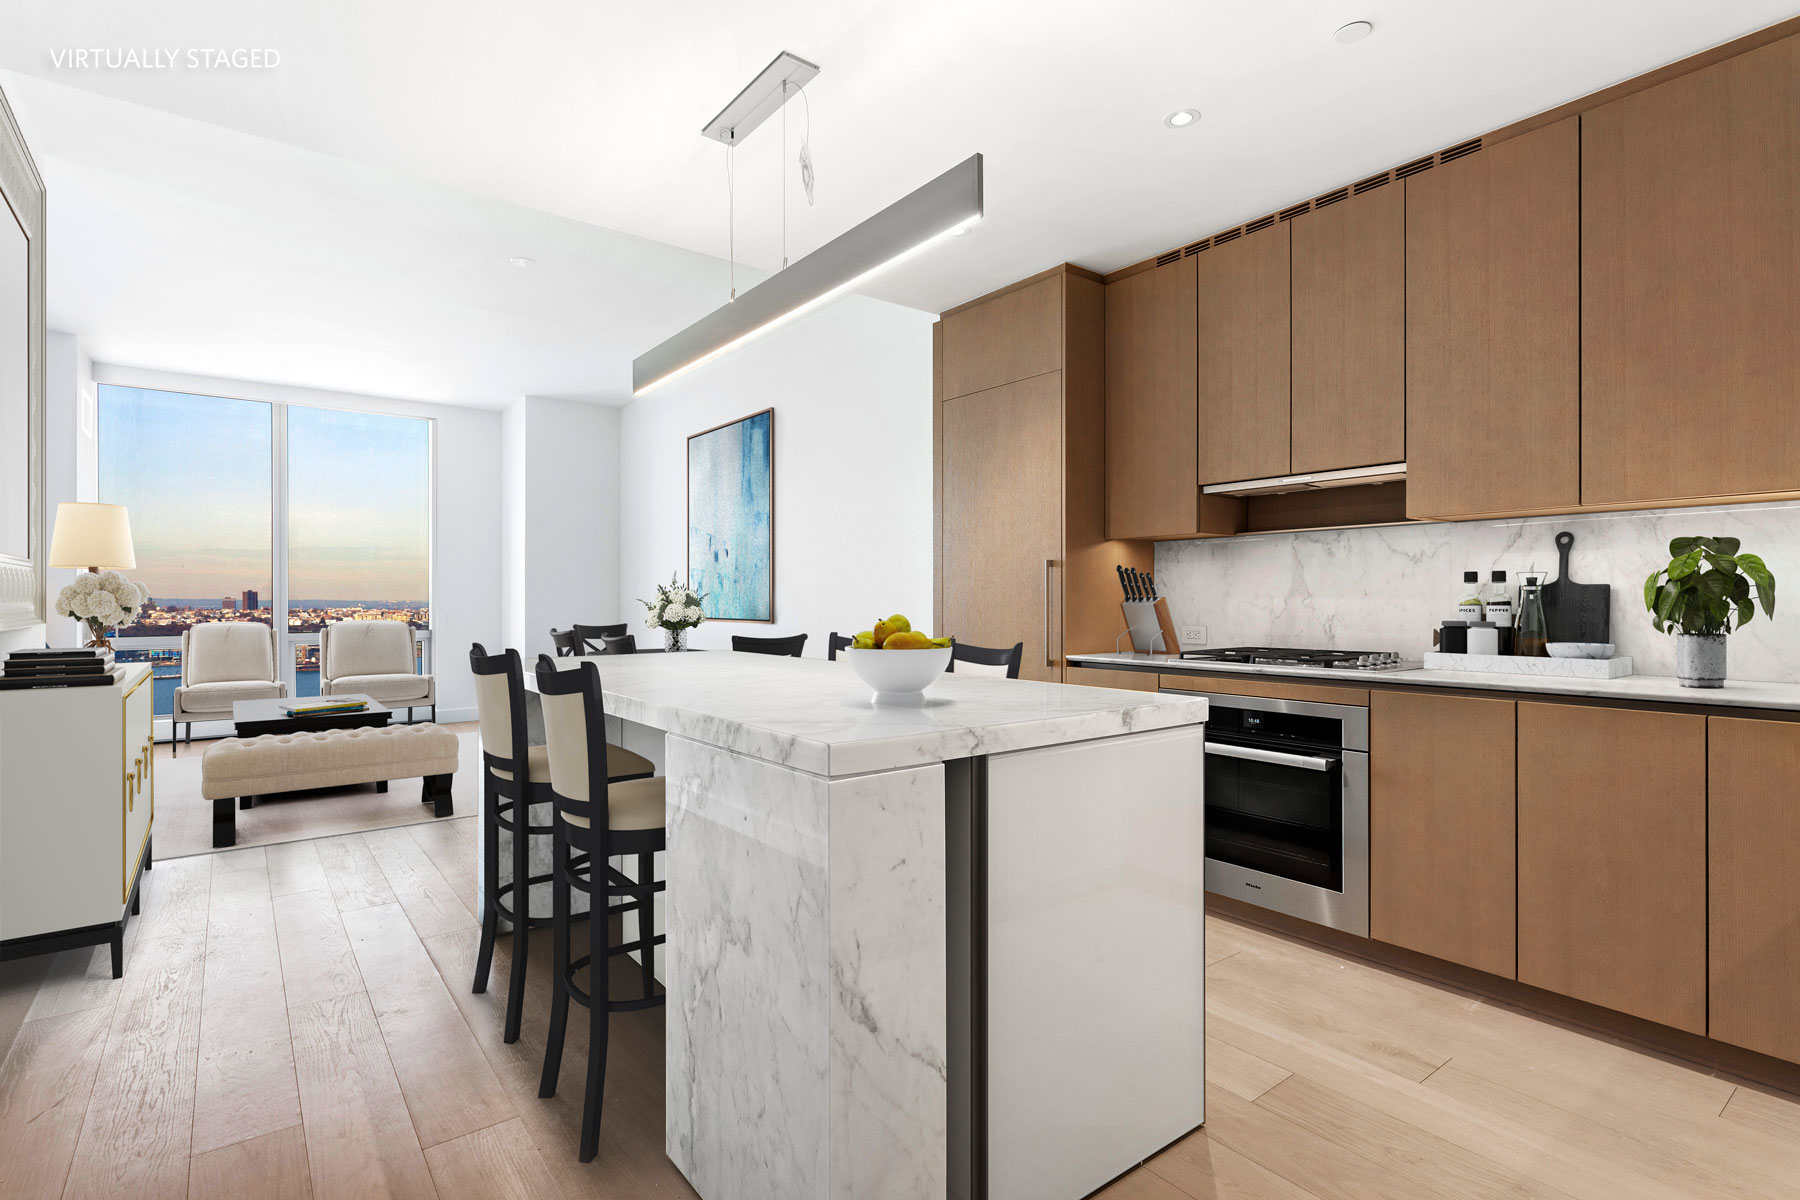 """Experience the ultimate lifestyle in the new heart of NYC - the  most talked about neighborhood, Hudson Yards - and enjoy all of the included, unparalleled amenities!Residence 27D is an exceptional 1,571 square foot, two-bedroom home with ceilings up to 9'10"""" and sunset views of the Hudson River.The great room features an open kitchen with a marble island, oak wood cabinetry and Miele appliances including wine storage and food processor. The master bedroom suite features generous closet space and a luxurious master bath. A second bedroom with en-suite bath, a gracious entry foyer, and a powder room for guests make this a truly extraordinary home.Designed by Diller Scofidio + Renfro in collaboration with Rockwell Group, Fifteen Hudson Yards offers residents over 40,000 square feet of amenities across three floors. Floor 50 has been devoted to the full range of fitness and wellness opportunities, including an aquatics center with a 75-foot long three-lane swimming pool, a 3,500 square foot fitness center designed by The Wright Fit, private studio for yoga, stretching and group fitness classes, private spa suites with treatment rooms, and a beauty bar for hair and makeup services.Floor 51 features two corner private dinner suites including wine storage and tasting rooms, lounge with breathtaking Hudson River views, club room with billiards tables, card tables and large-screen TV, a screening room, business center, golf club lounge, and an atelier with communal working table and lounge seating.Pets need to be approved by owner.This incredible, never lived in apartment, is being offered with NO FEE."""